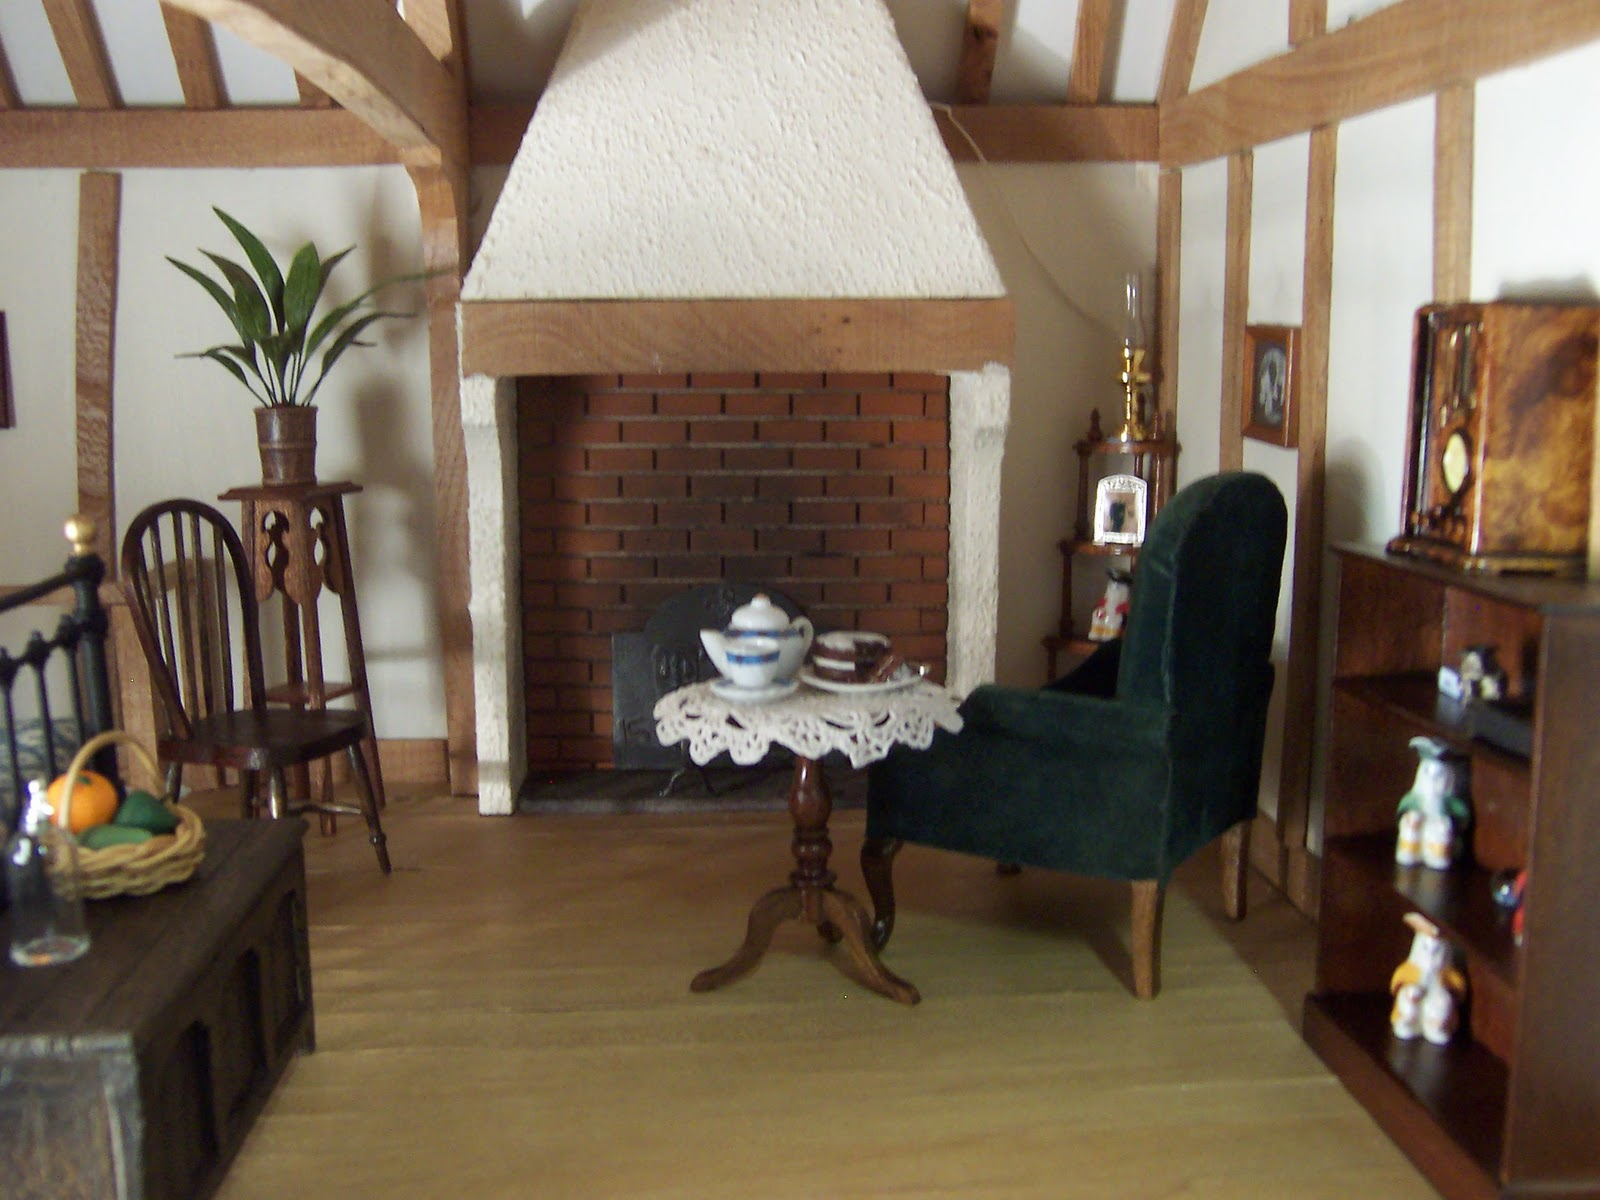 Dolls Houses And Miniatures October 2011